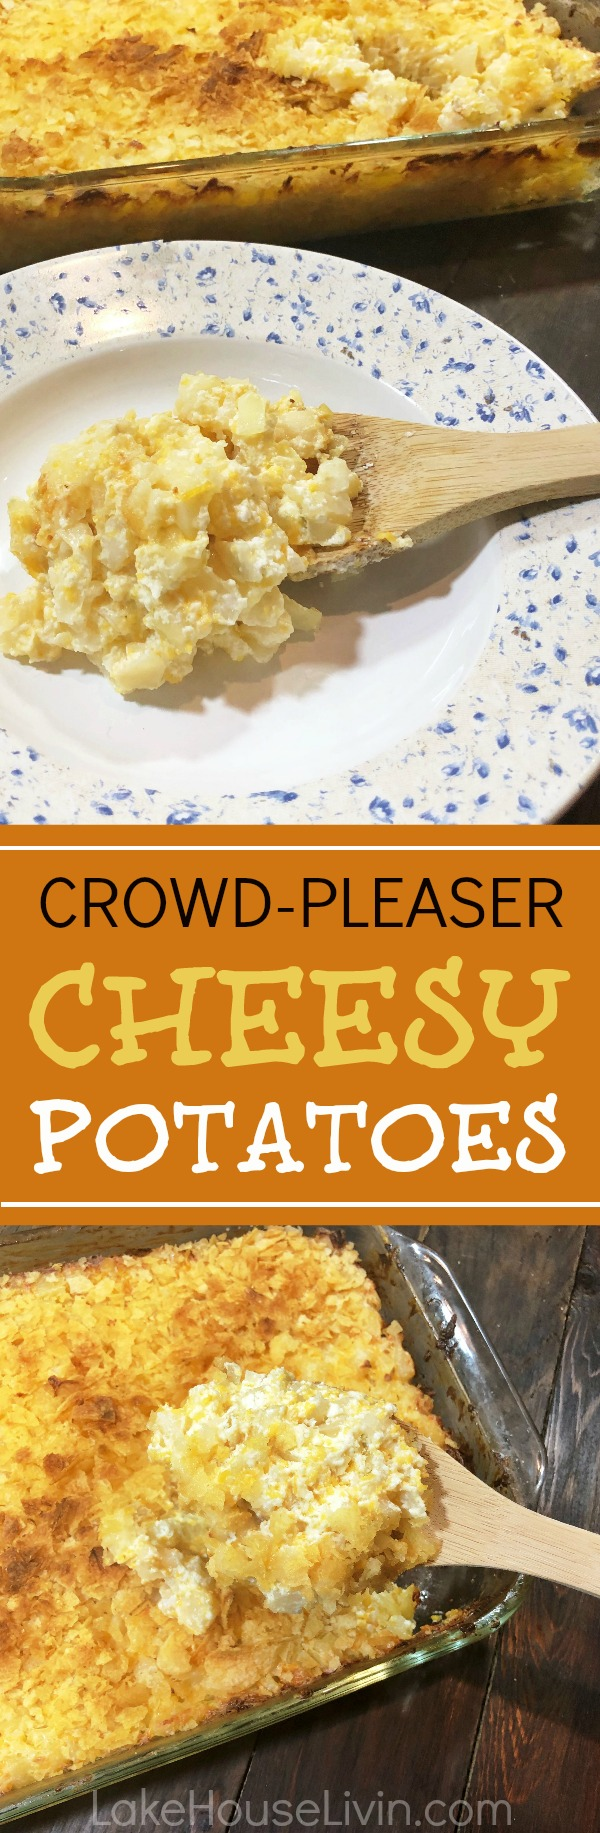 cheesy potatoes, entertaining at the lake, crowd pleaser cheesy potatoes, entertaining side dish, lake house recipes